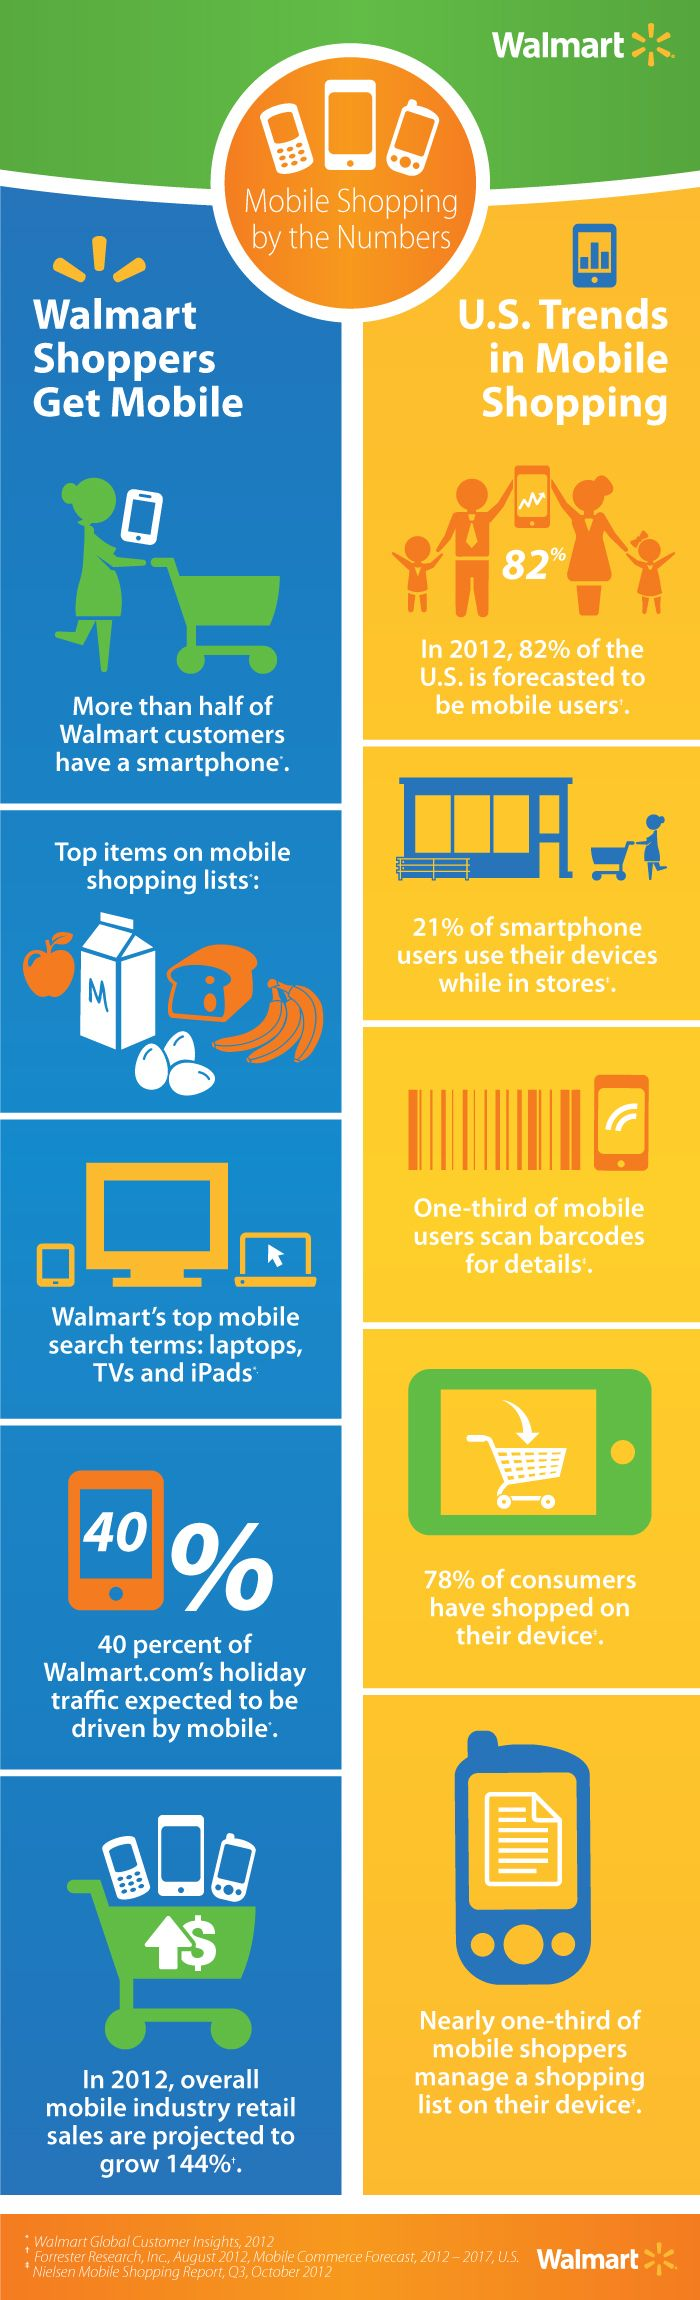 Mobile shopping by the numbers #infographic